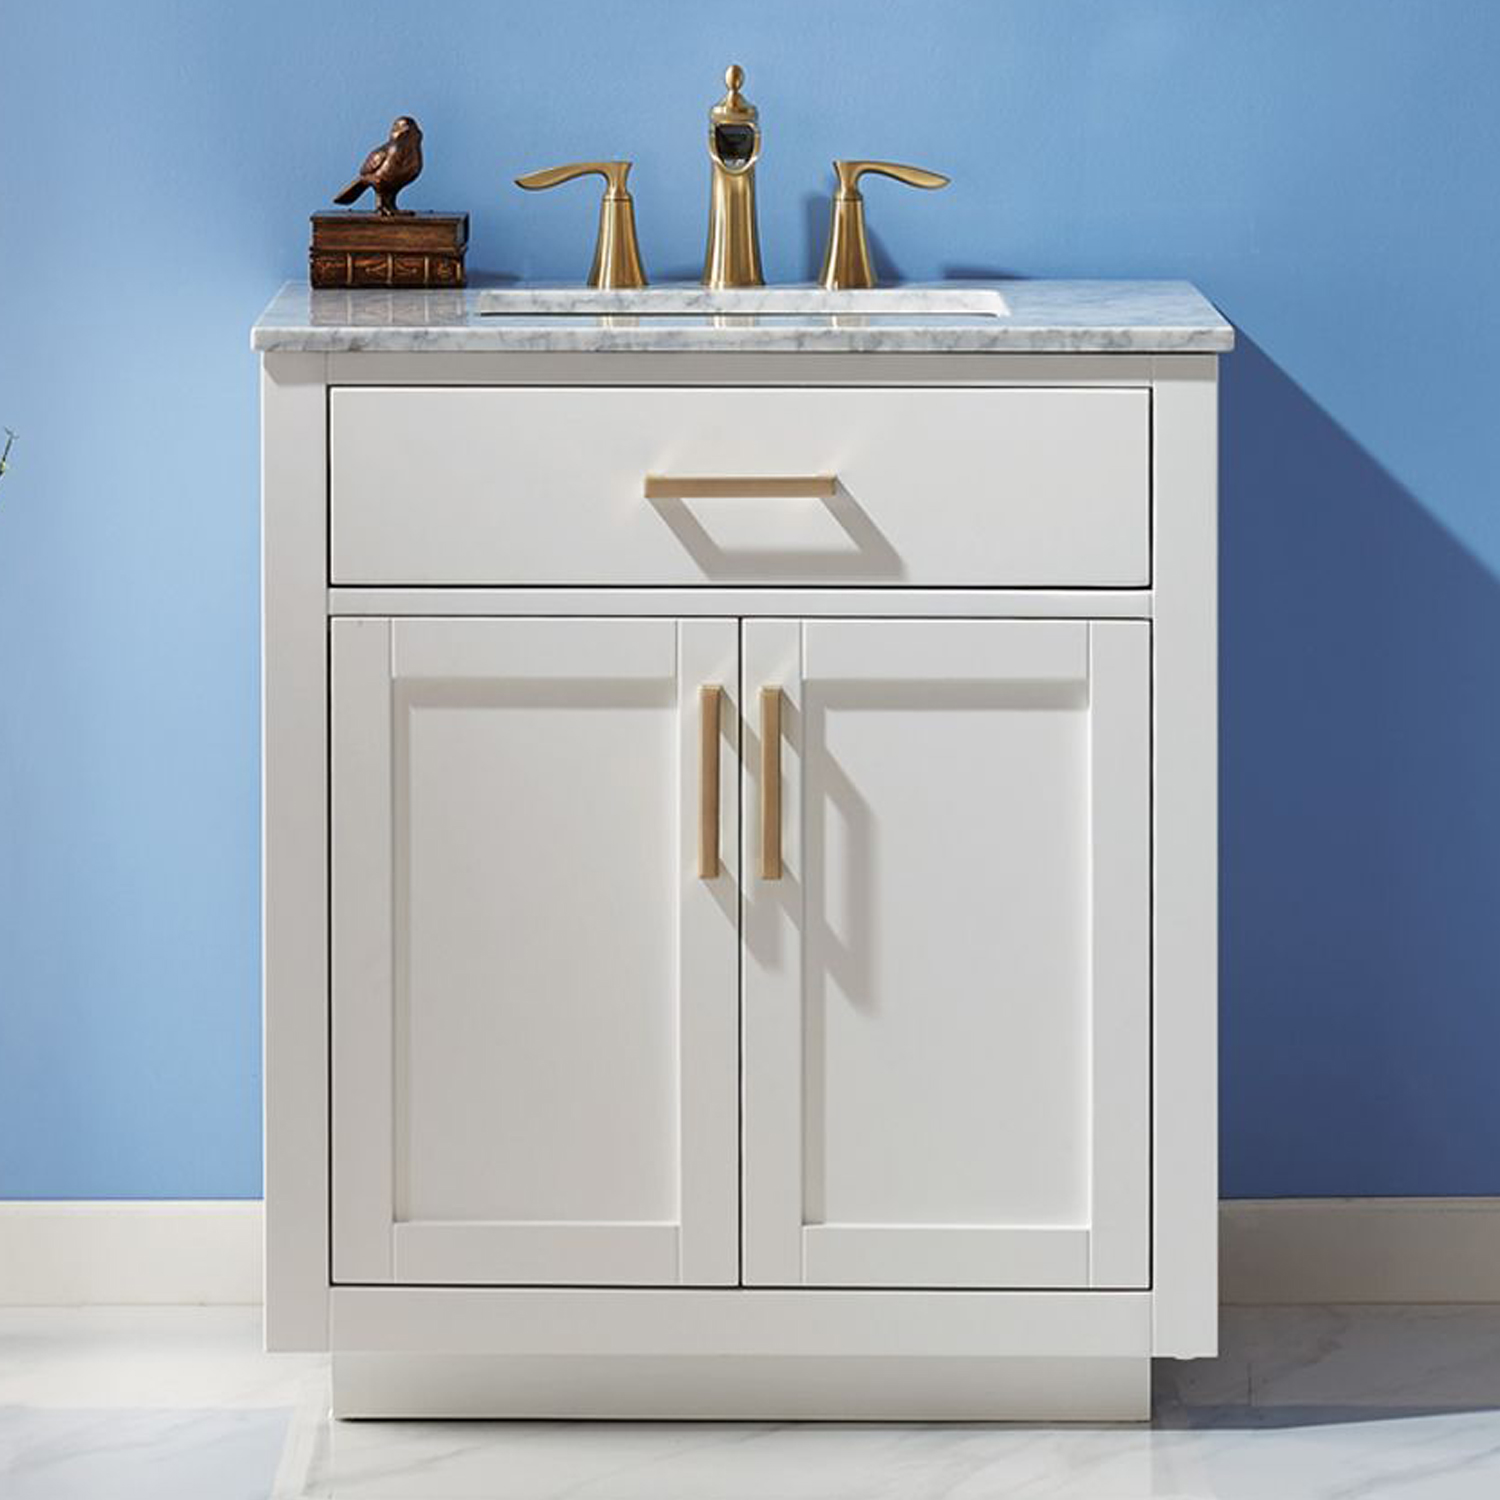 """Issac Edwards Collection 30"""" Single Bathroom Vanity Set in White and Carrara White Marble Countertop without Mirror"""